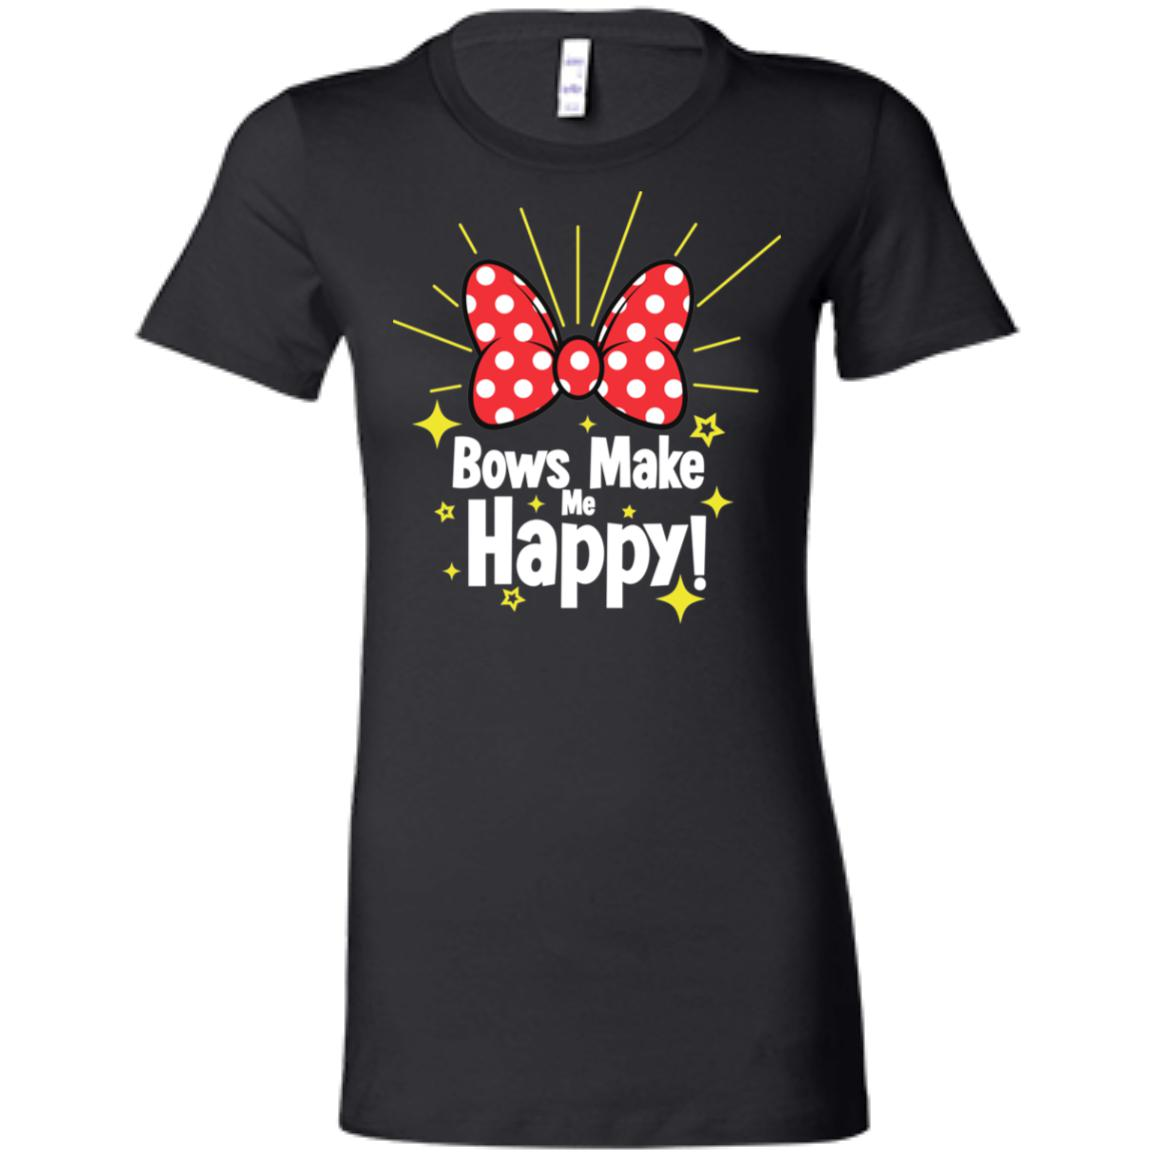 Bows Make Me Happy - Bella + Canvas Ladies' Favorite T-Shirt